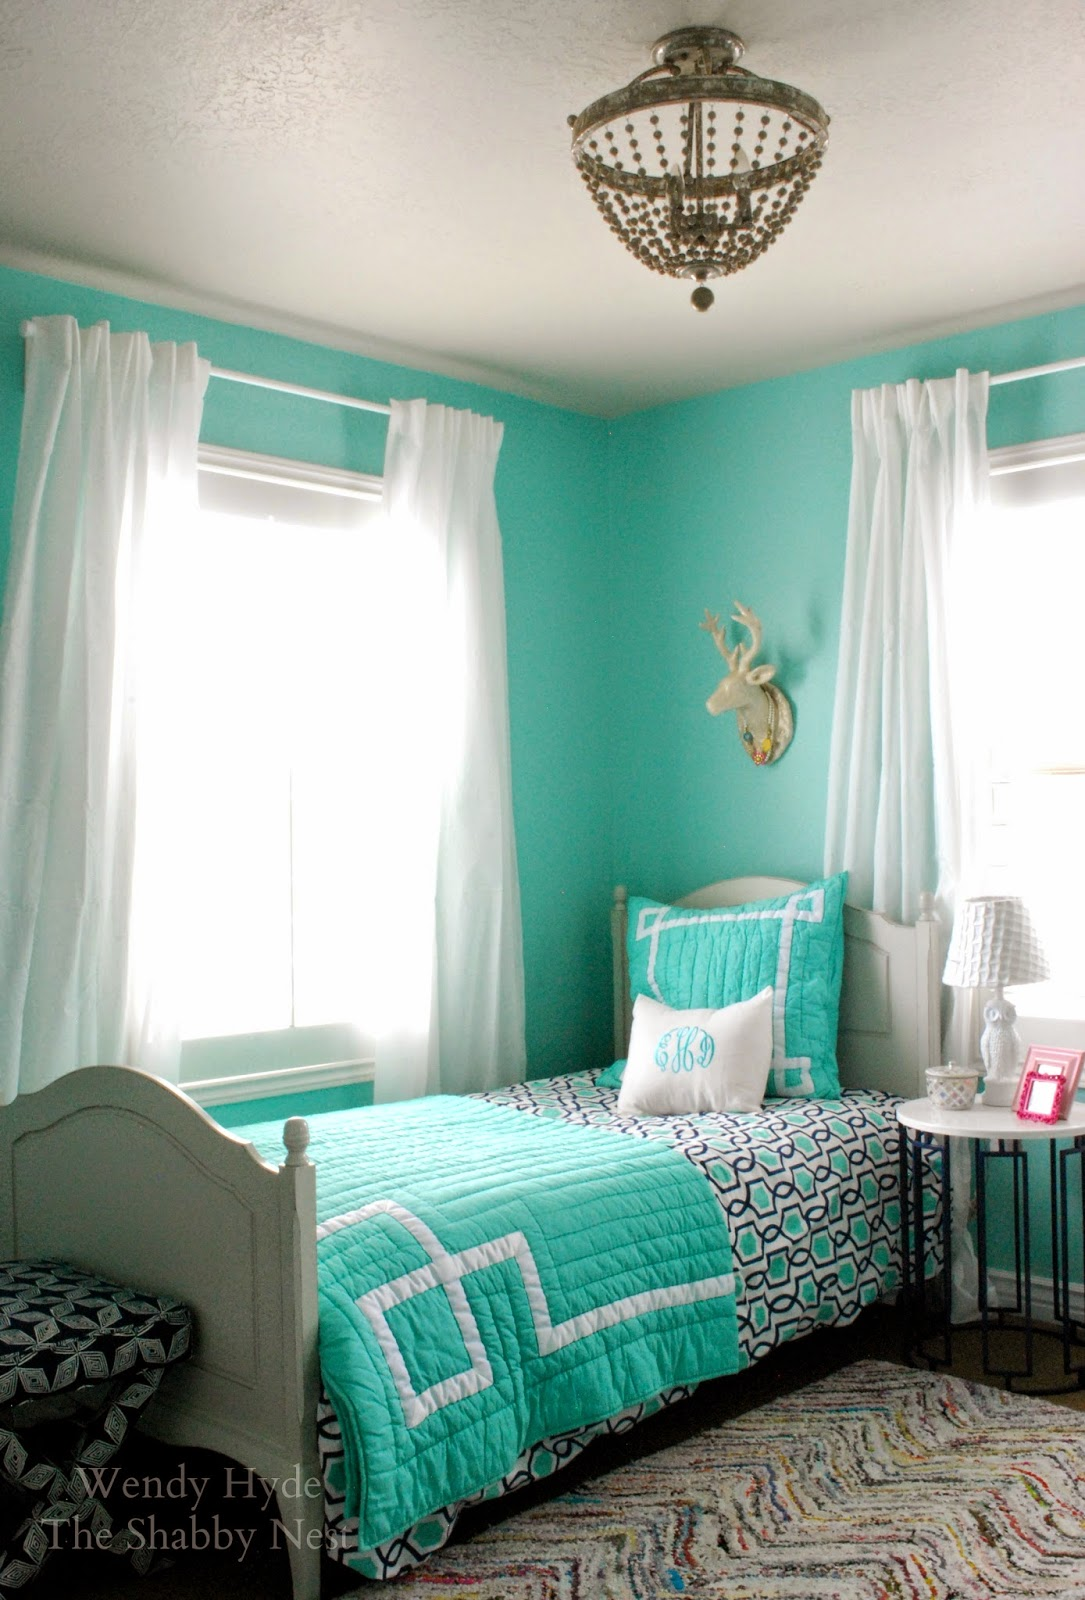 The shabby nest one room challenge the teen girl 39 s bedroom reveal - Girls bed room ...